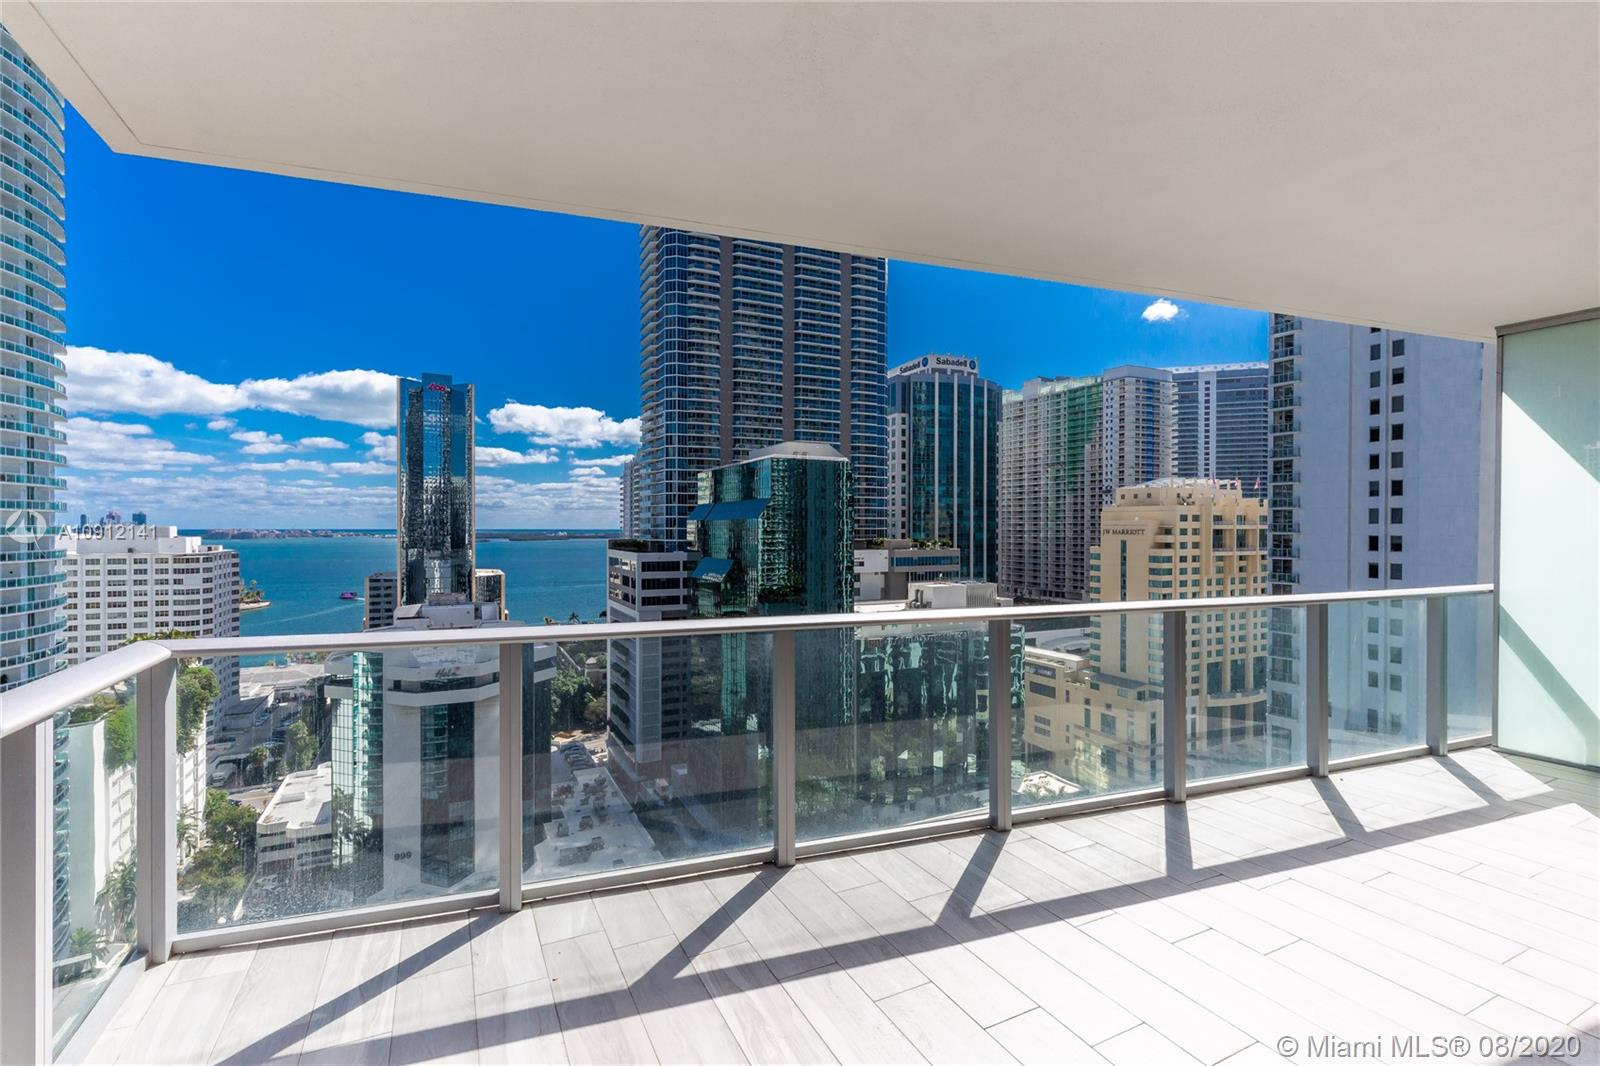 Fabulous 3 bed 3 bath 1,753 sq ft unit at the iconic 1010 Brickell condo featuring top-of-the-line modern finishes throughout, stunning panoramic views, wood flooring, modern chic kitchen, built-out closets, and baths with glass-enclosed showers. Plus, this unit comes with a two-car garage and an additional assigned parking space! Boutique amenities include: outdoor movie theater, restaurant, rooftop swimming pool, spa, hot tub, sauna, steam room, basketball court, racquetball court, running track, fitness center, party room, kids room, virtual golf simulator, ping-pong table, and more. Spectacular views of the bay and the city skyline, walking distance to Brickell City Centre and public transportation. Don't miss this chance to be in the heart of everything Miami has to offer!